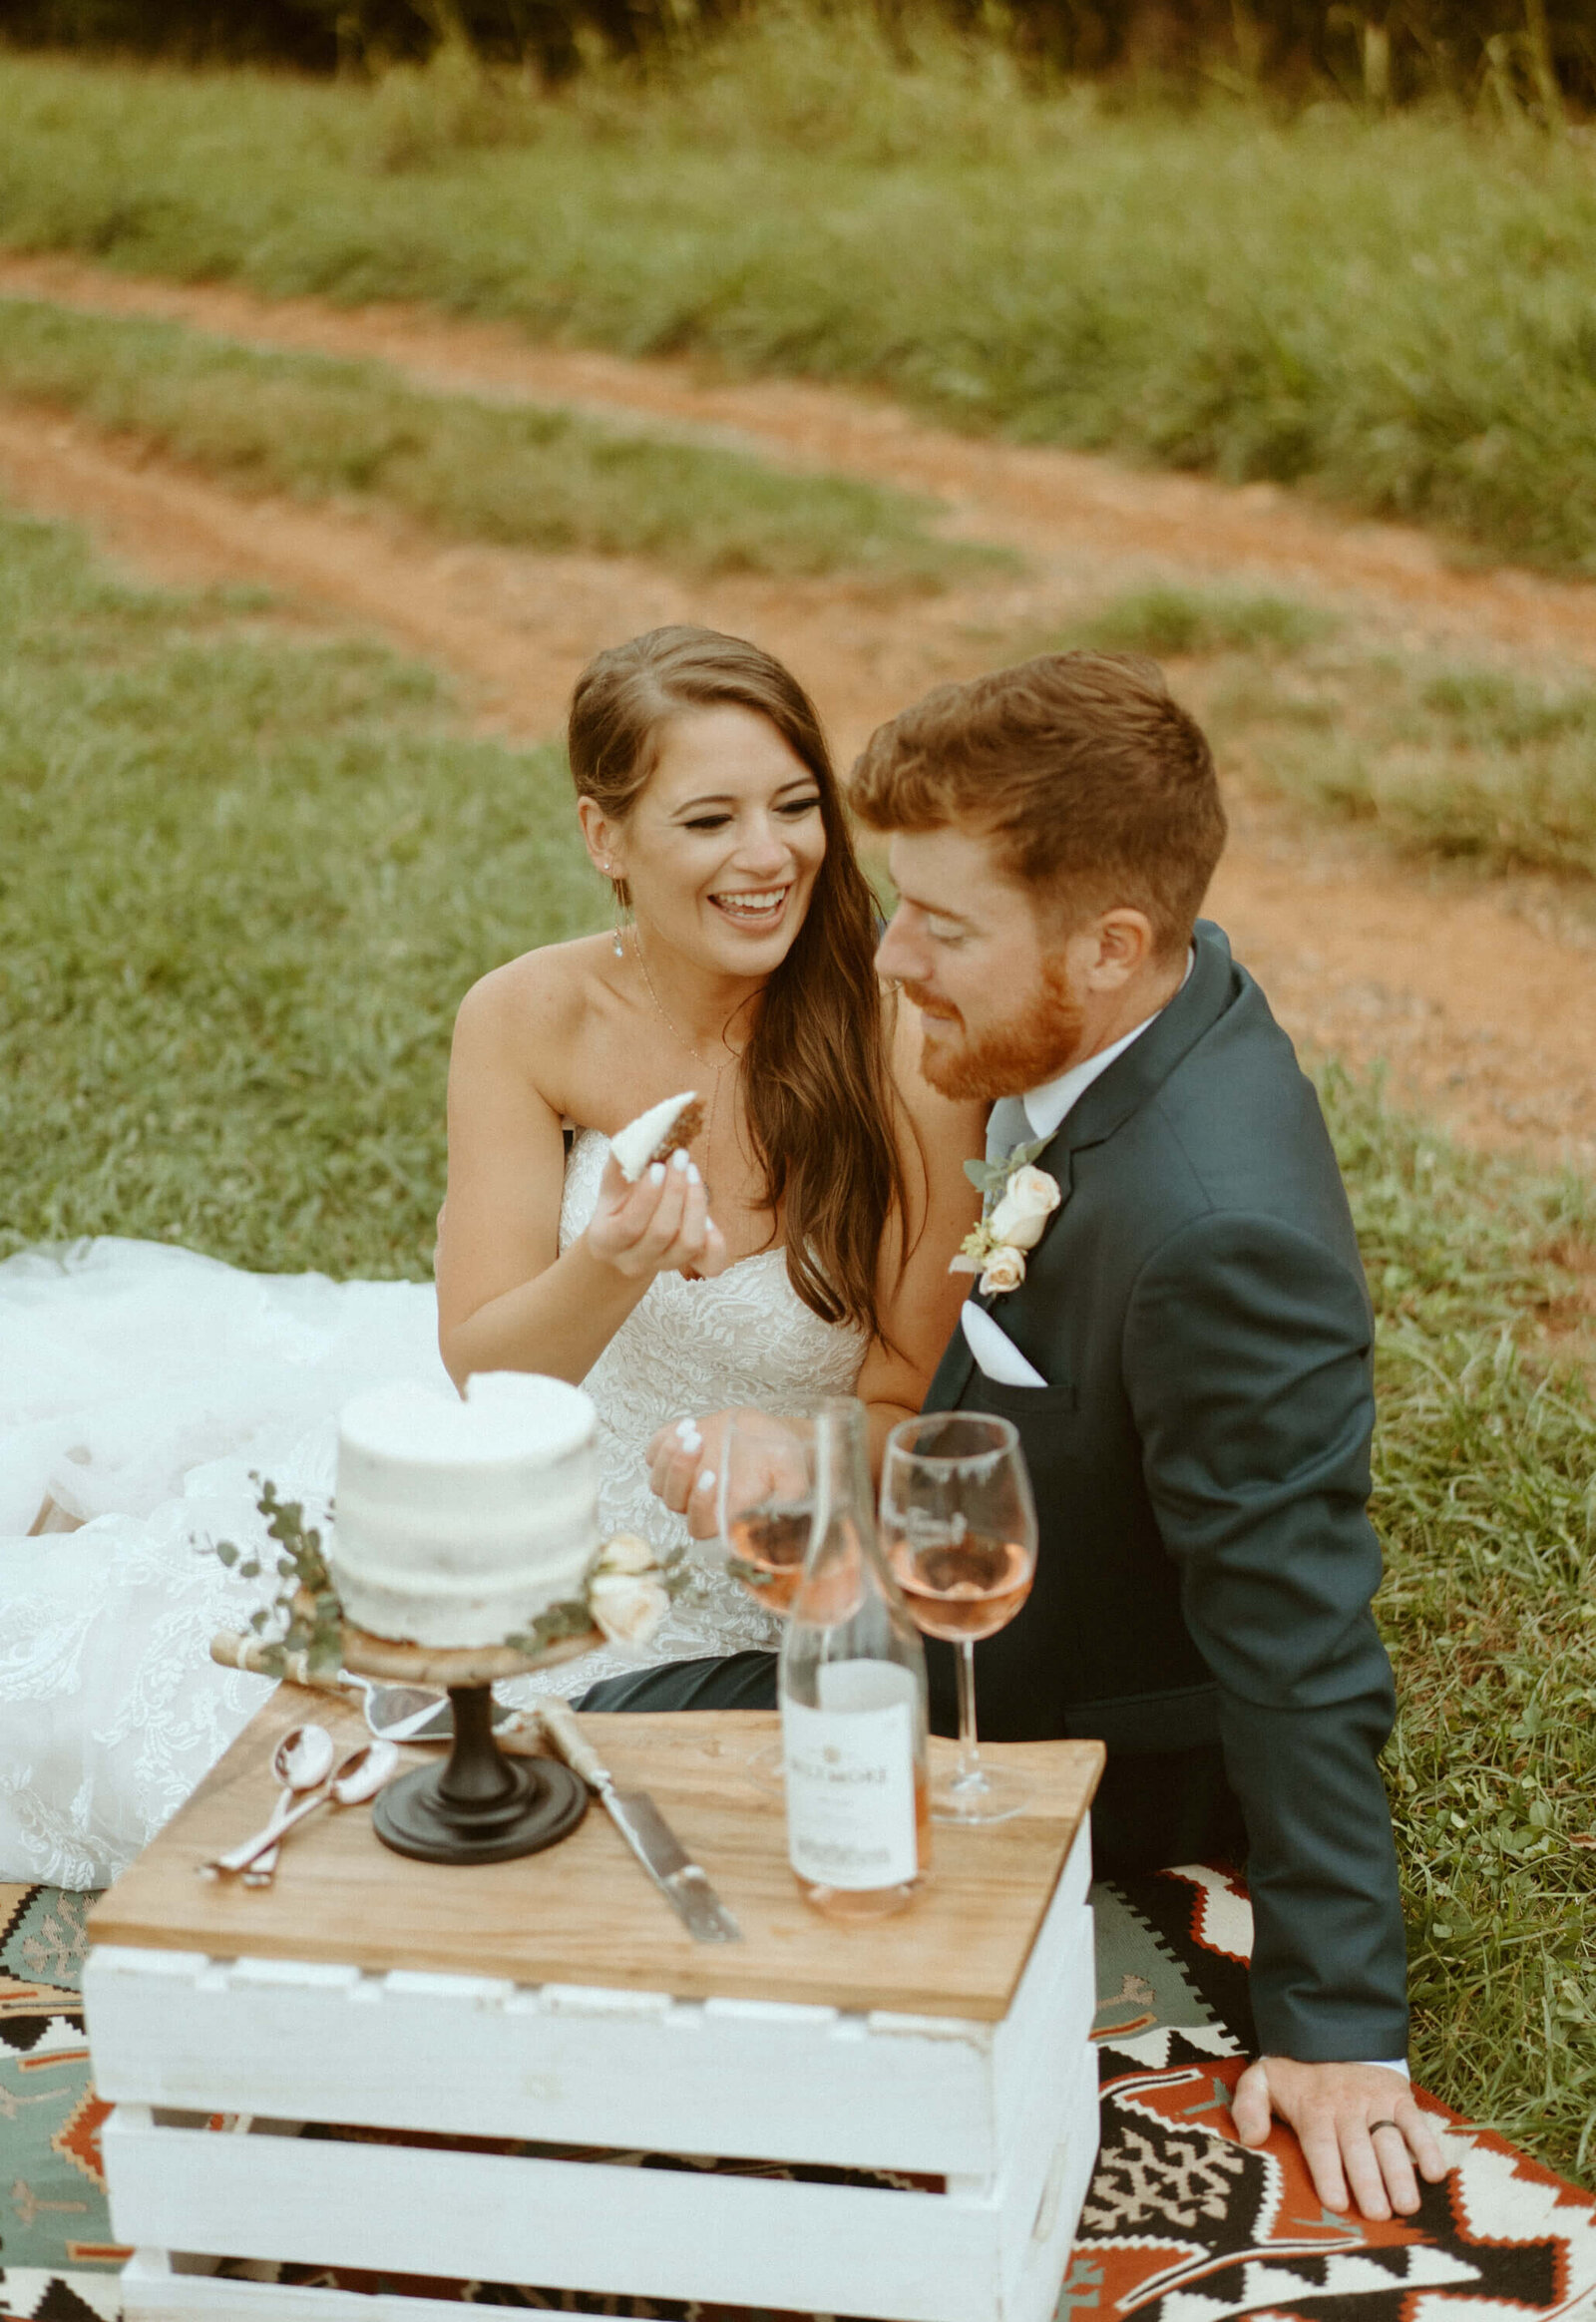 Leandra-Creative-Co-Photography-NC-Elopement-Photographer-47